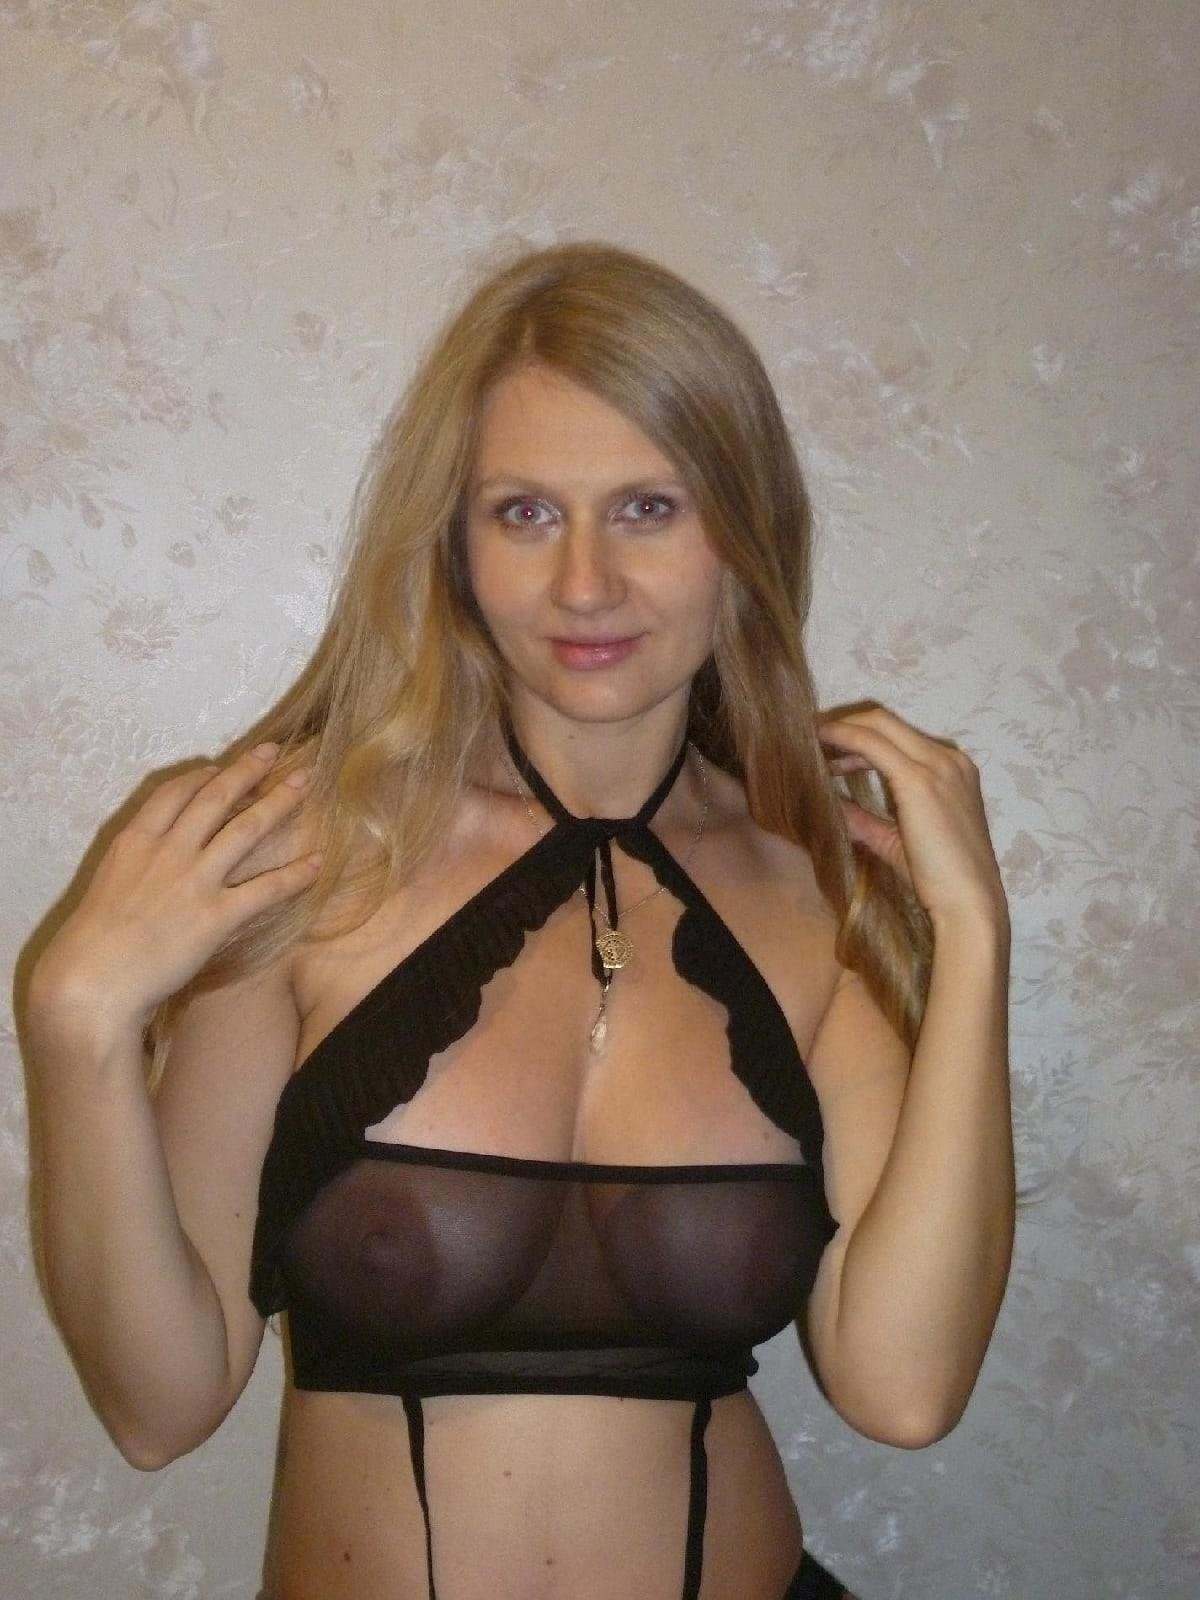 Picture with tags: Topless, Interesting, Lingerie, Girl